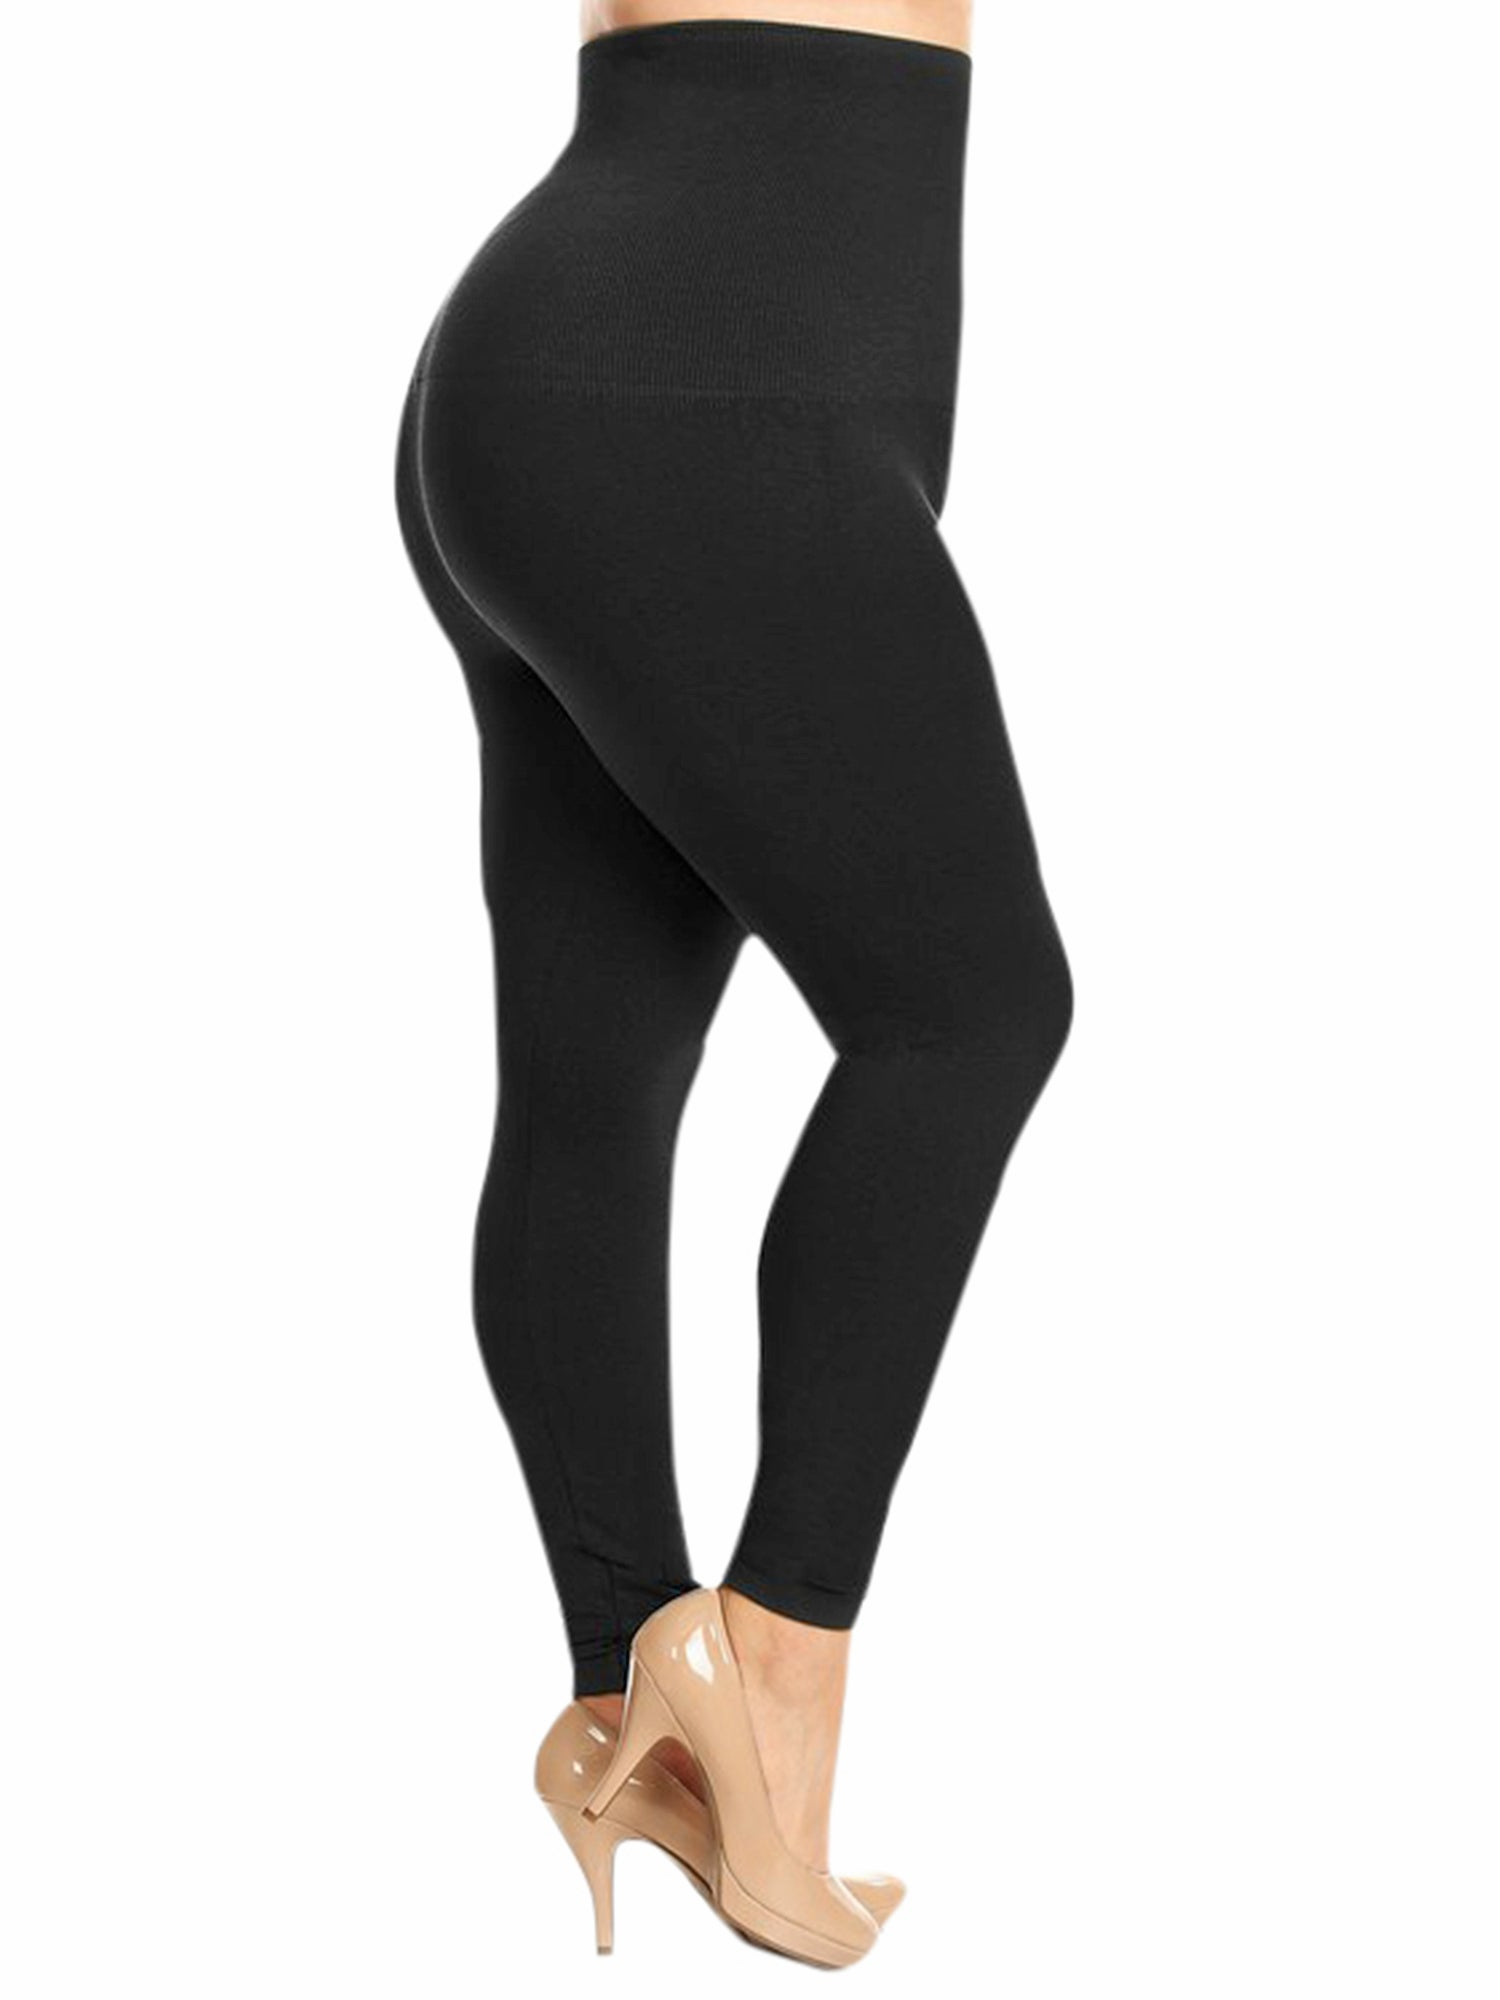 Black Compression Plus Size Leggings